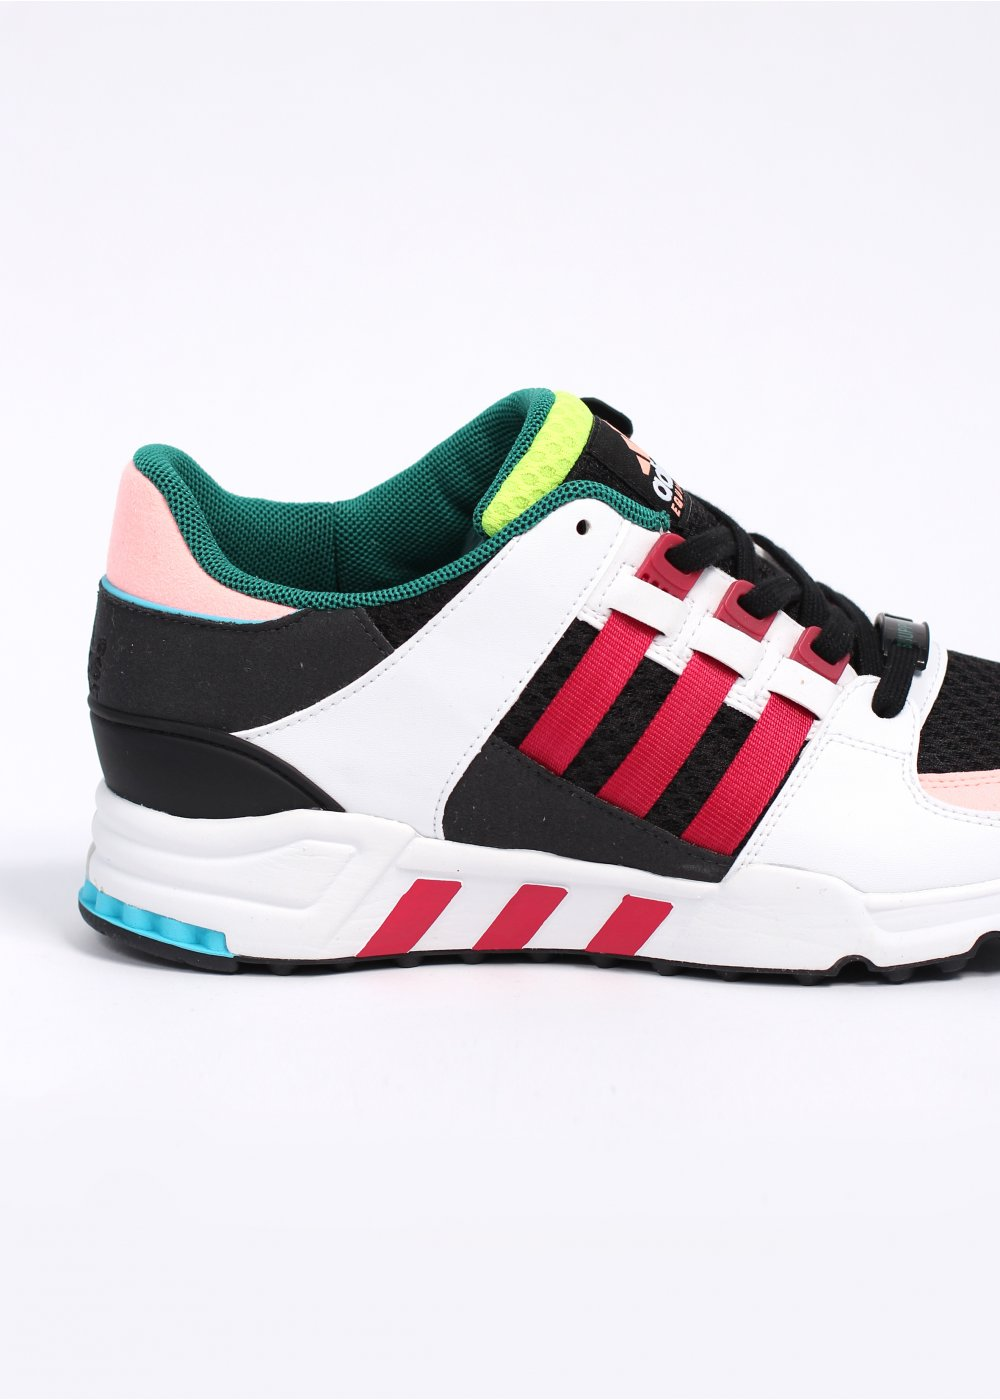 official photos 63bd2 eff4a adidas Originals Footwear Equipment EQT Running Support 'Oddity' Trainers -  Black / Red Beauty